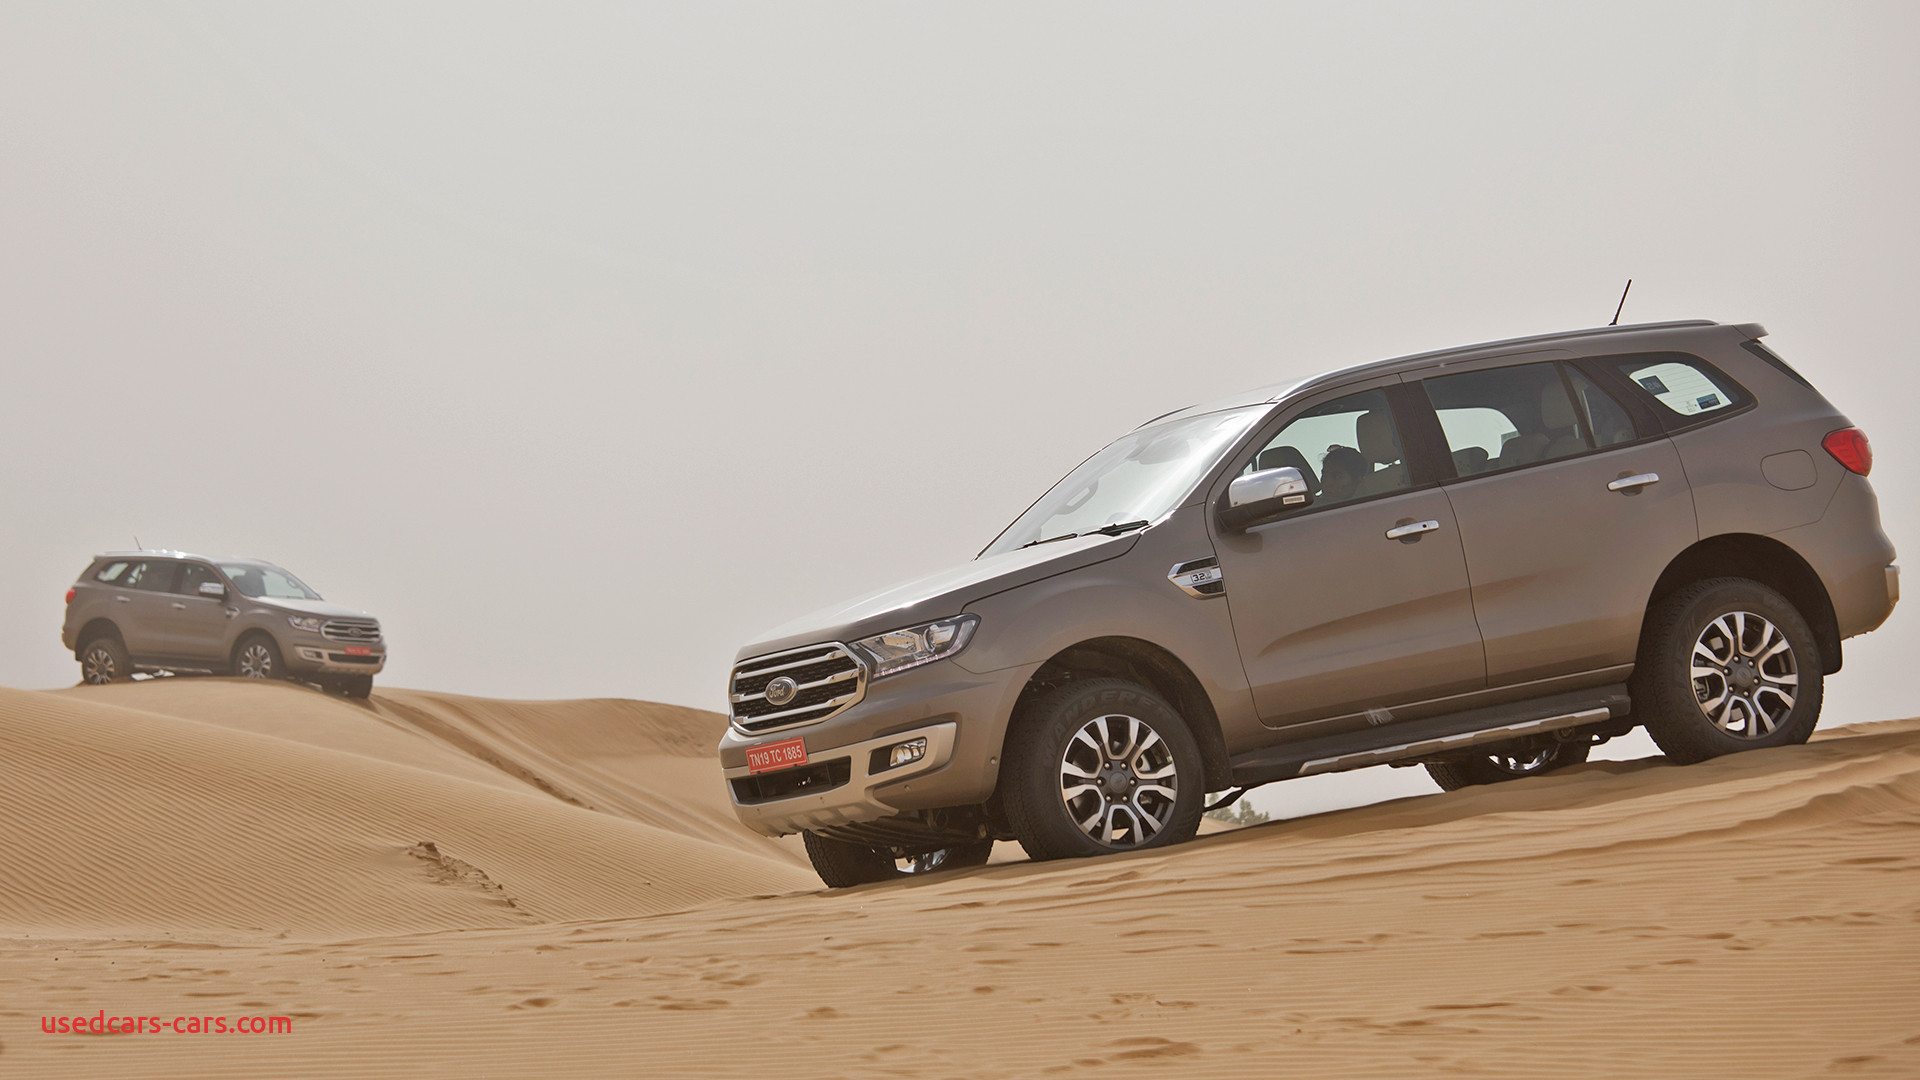 Ford Endeavour 2020 On Road Price Lovely ford Endeavour 2020 Price Mileage Reviews Specification